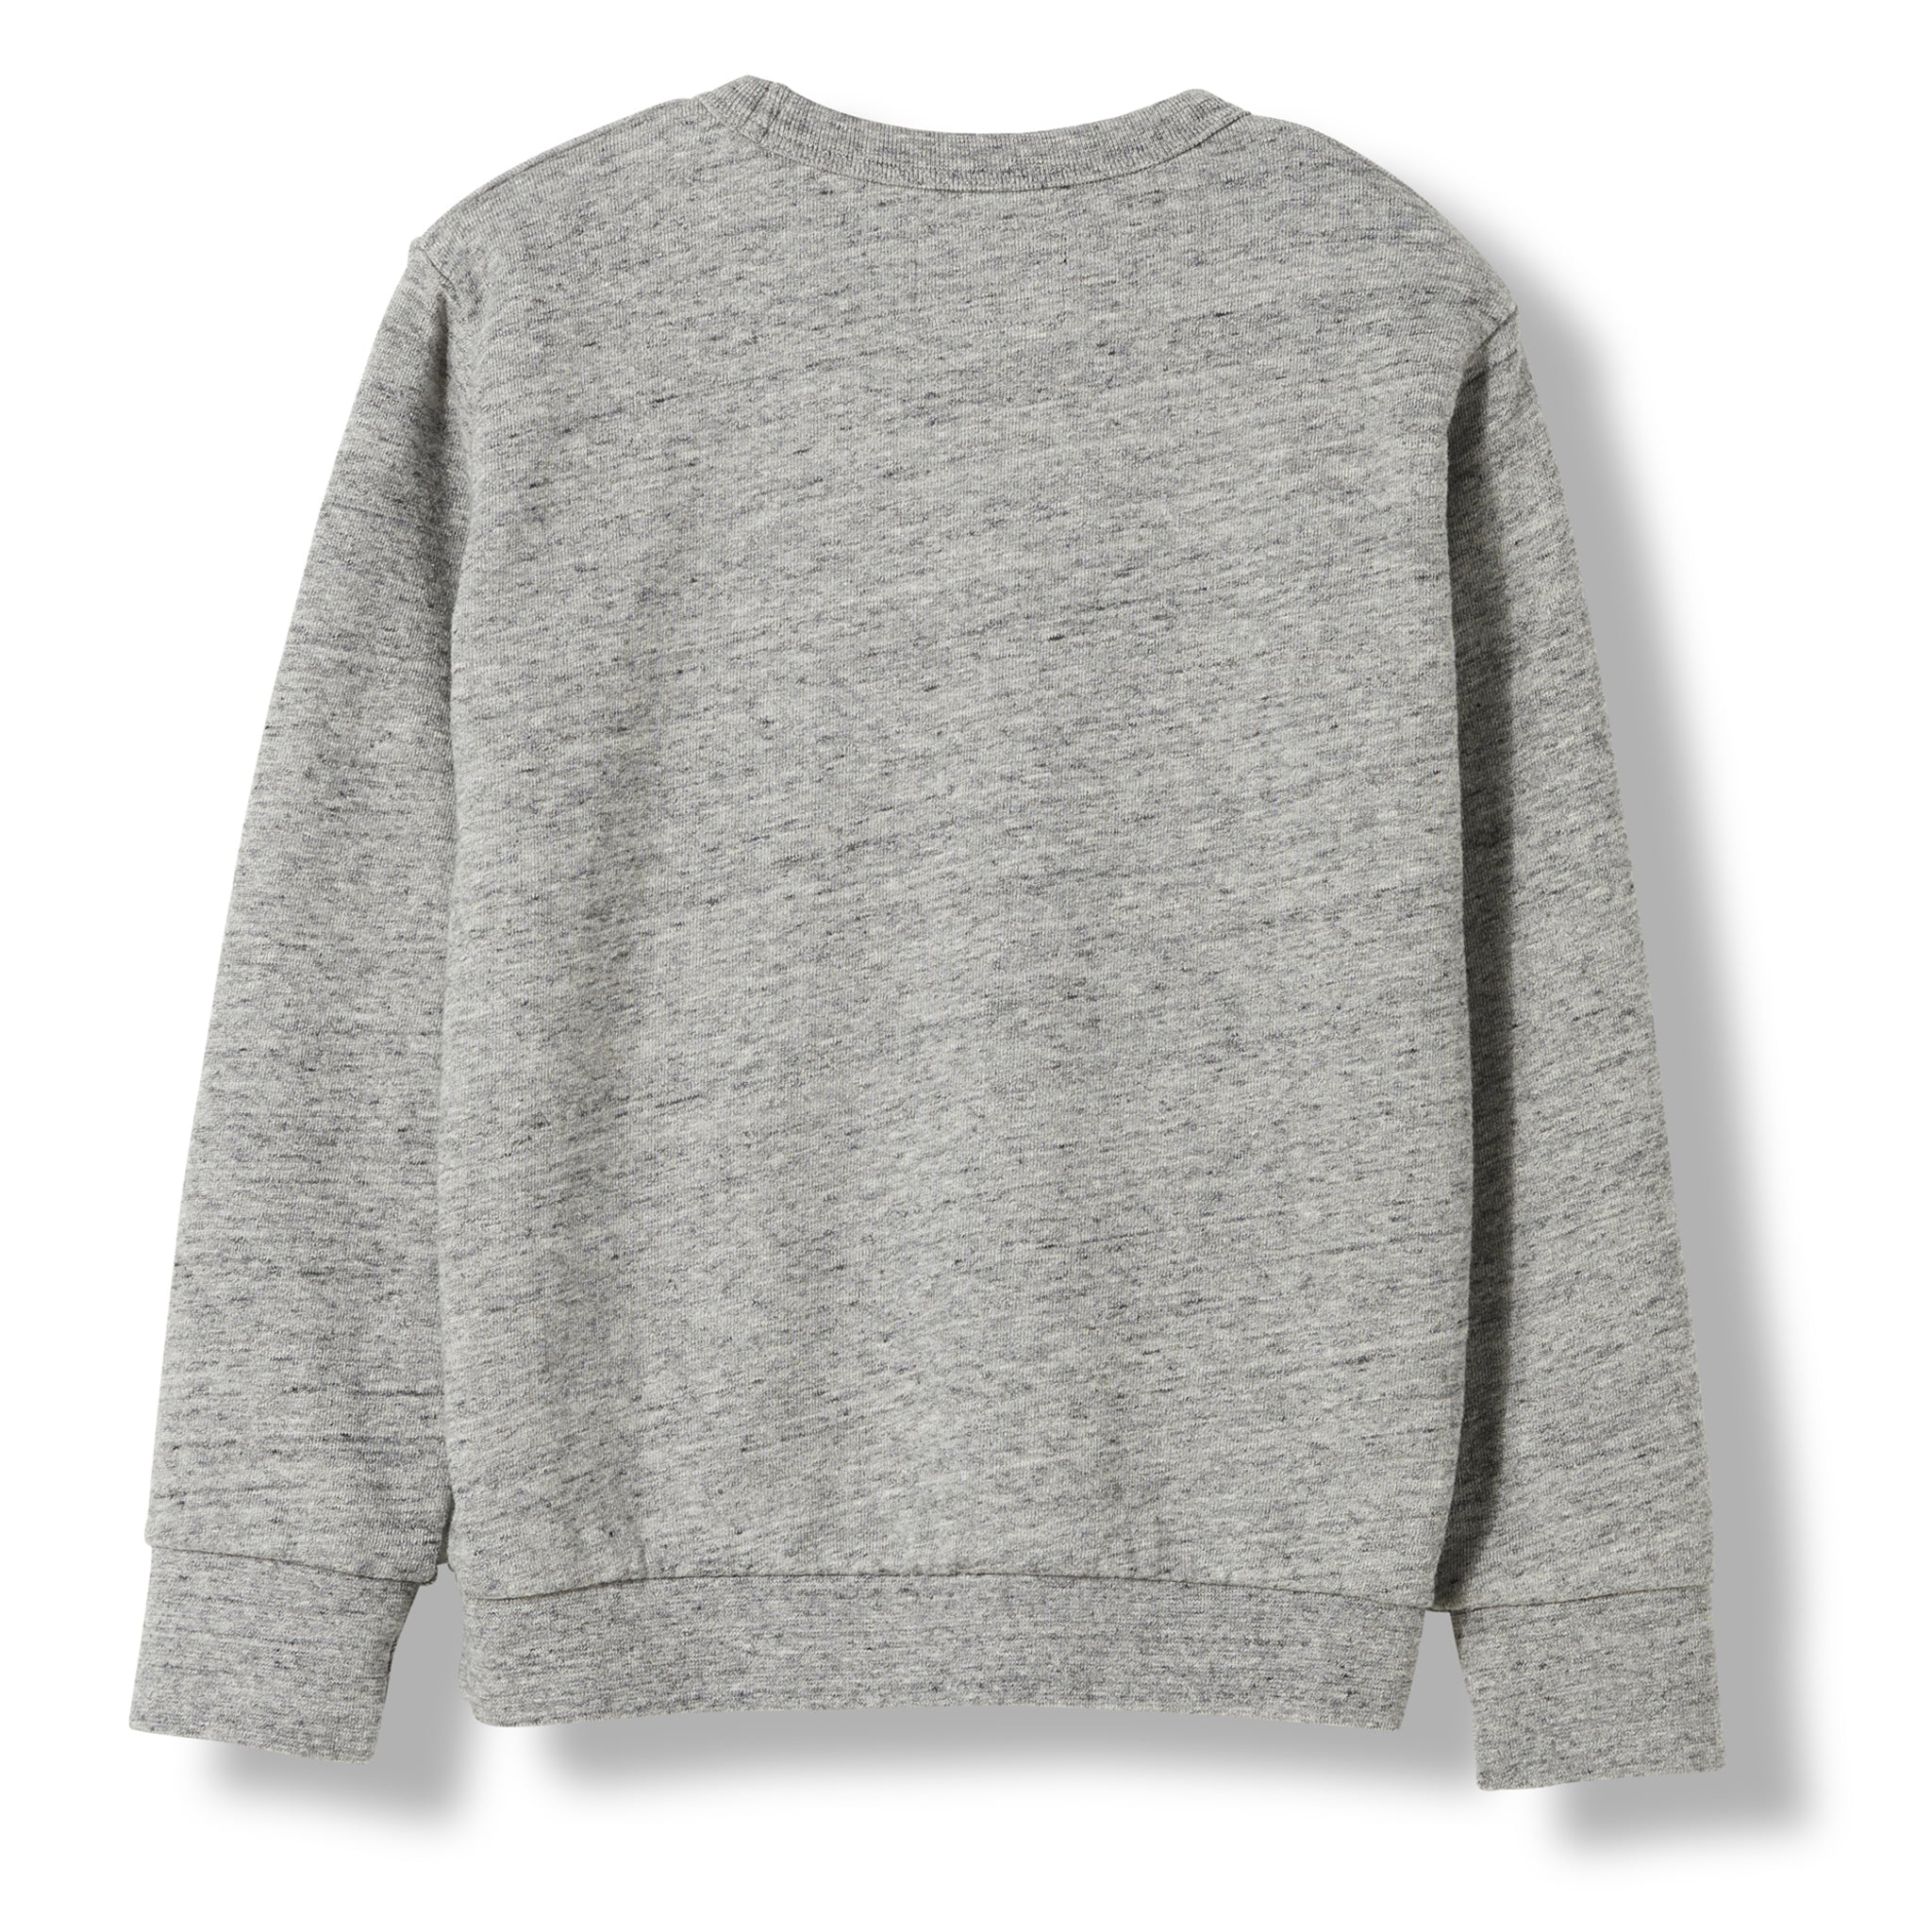 BRIAN Heather Grey Monster Plan -  Knitted Crew Neck Sweatshirt 2